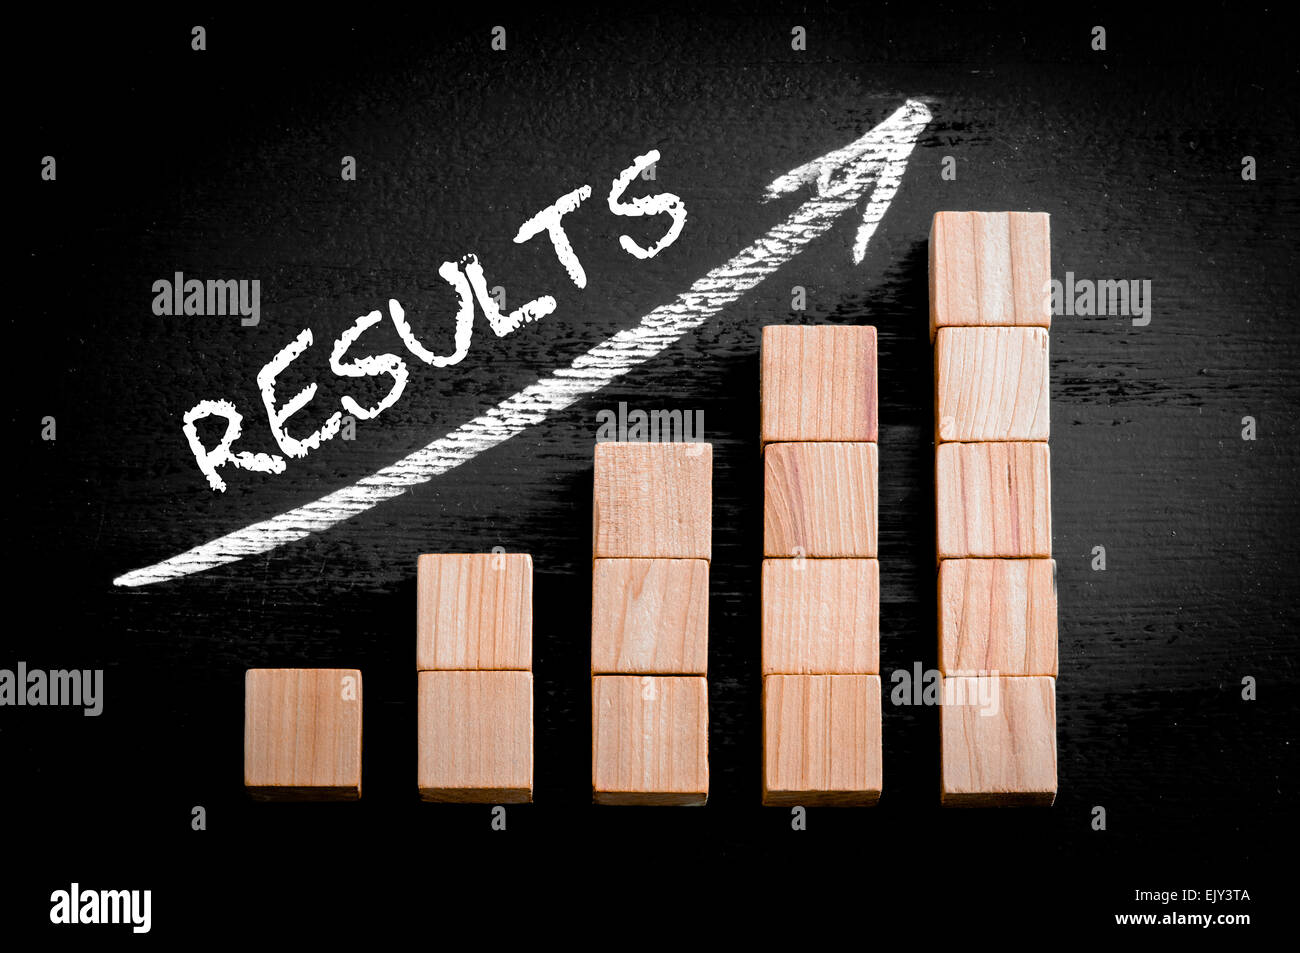 Word Results on ascending arrow above bar graph of Wooden small cubes isolated on black background. Chalk drawing - Stock Image